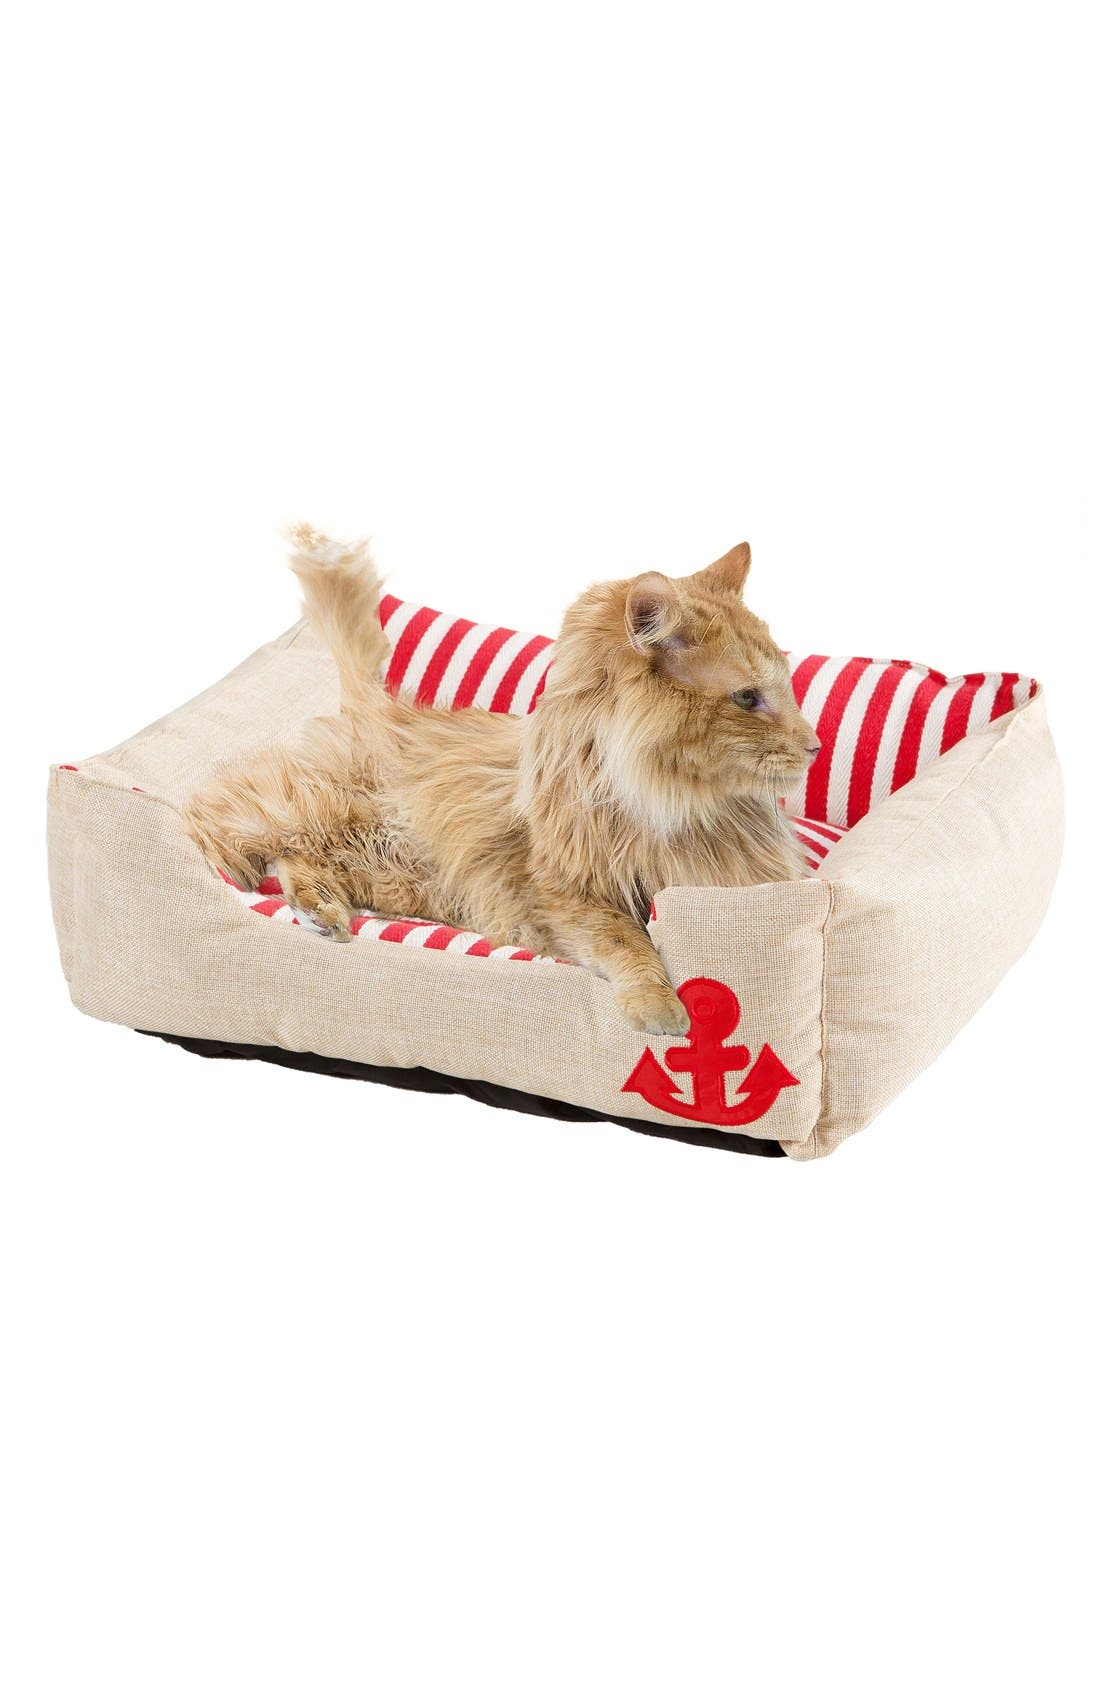 Everly Nautical Pet Bed,                             Main thumbnail 1, color,